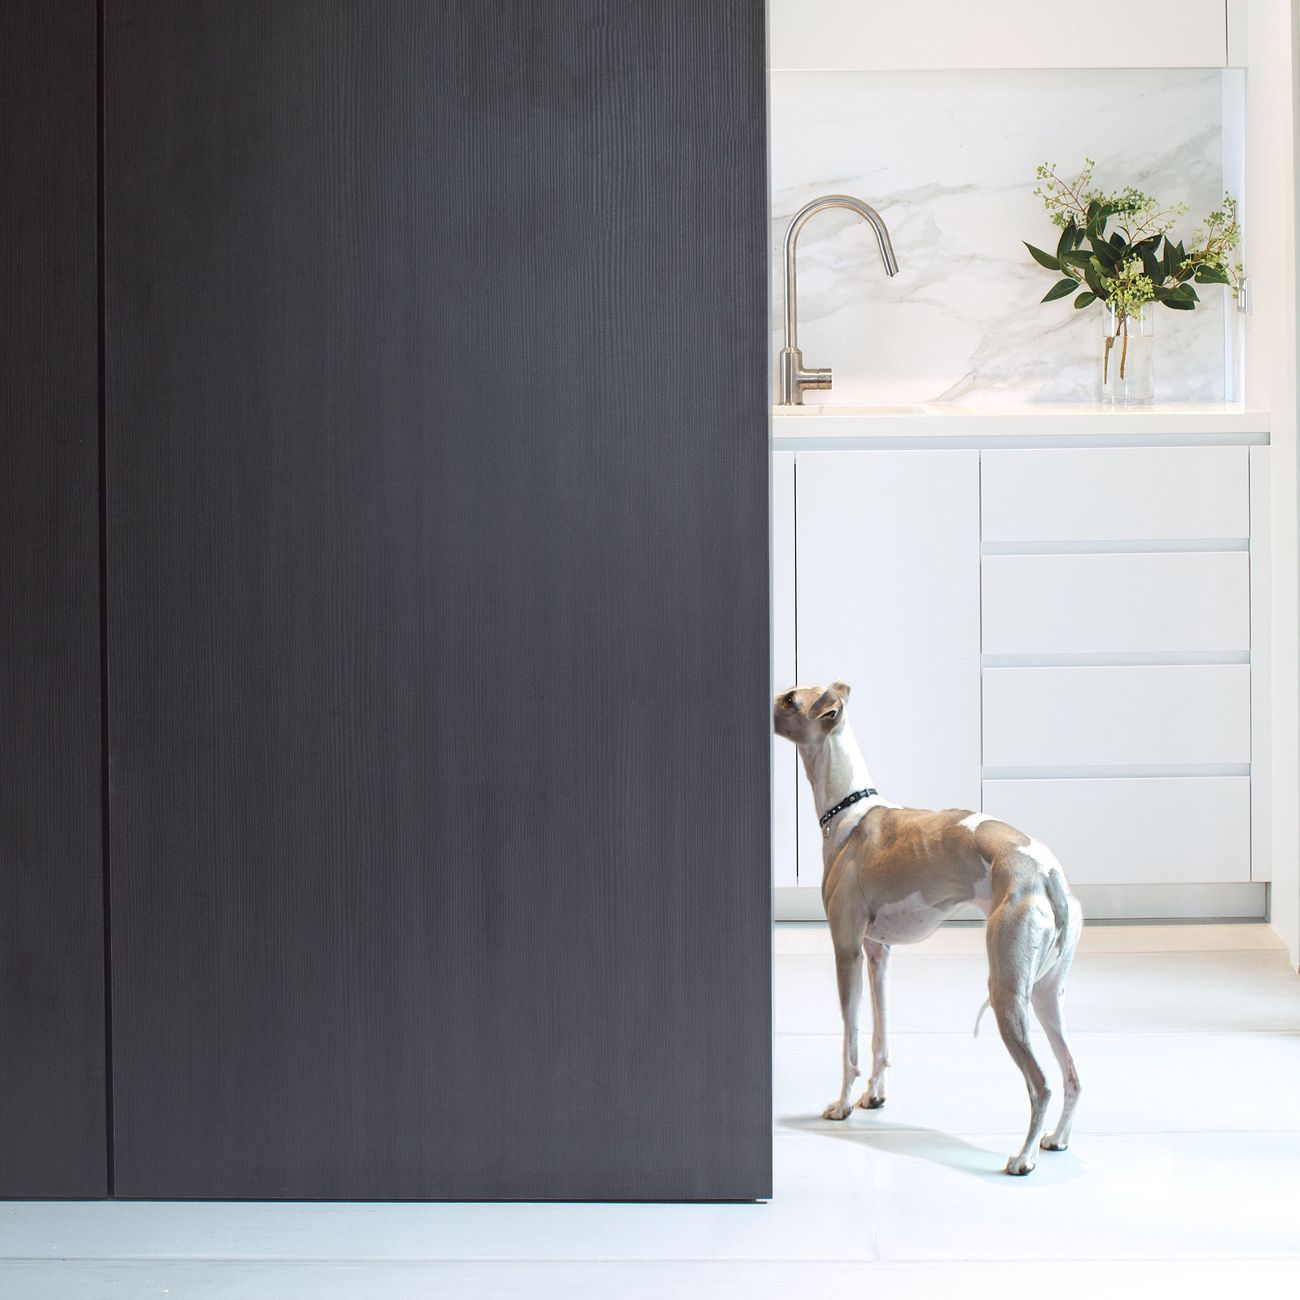 After months of renovating we're nearly finished. Kitchen Interior Interior Design Whippet Dog Sydneyphotographer Monochrome Marble Mono Minimal